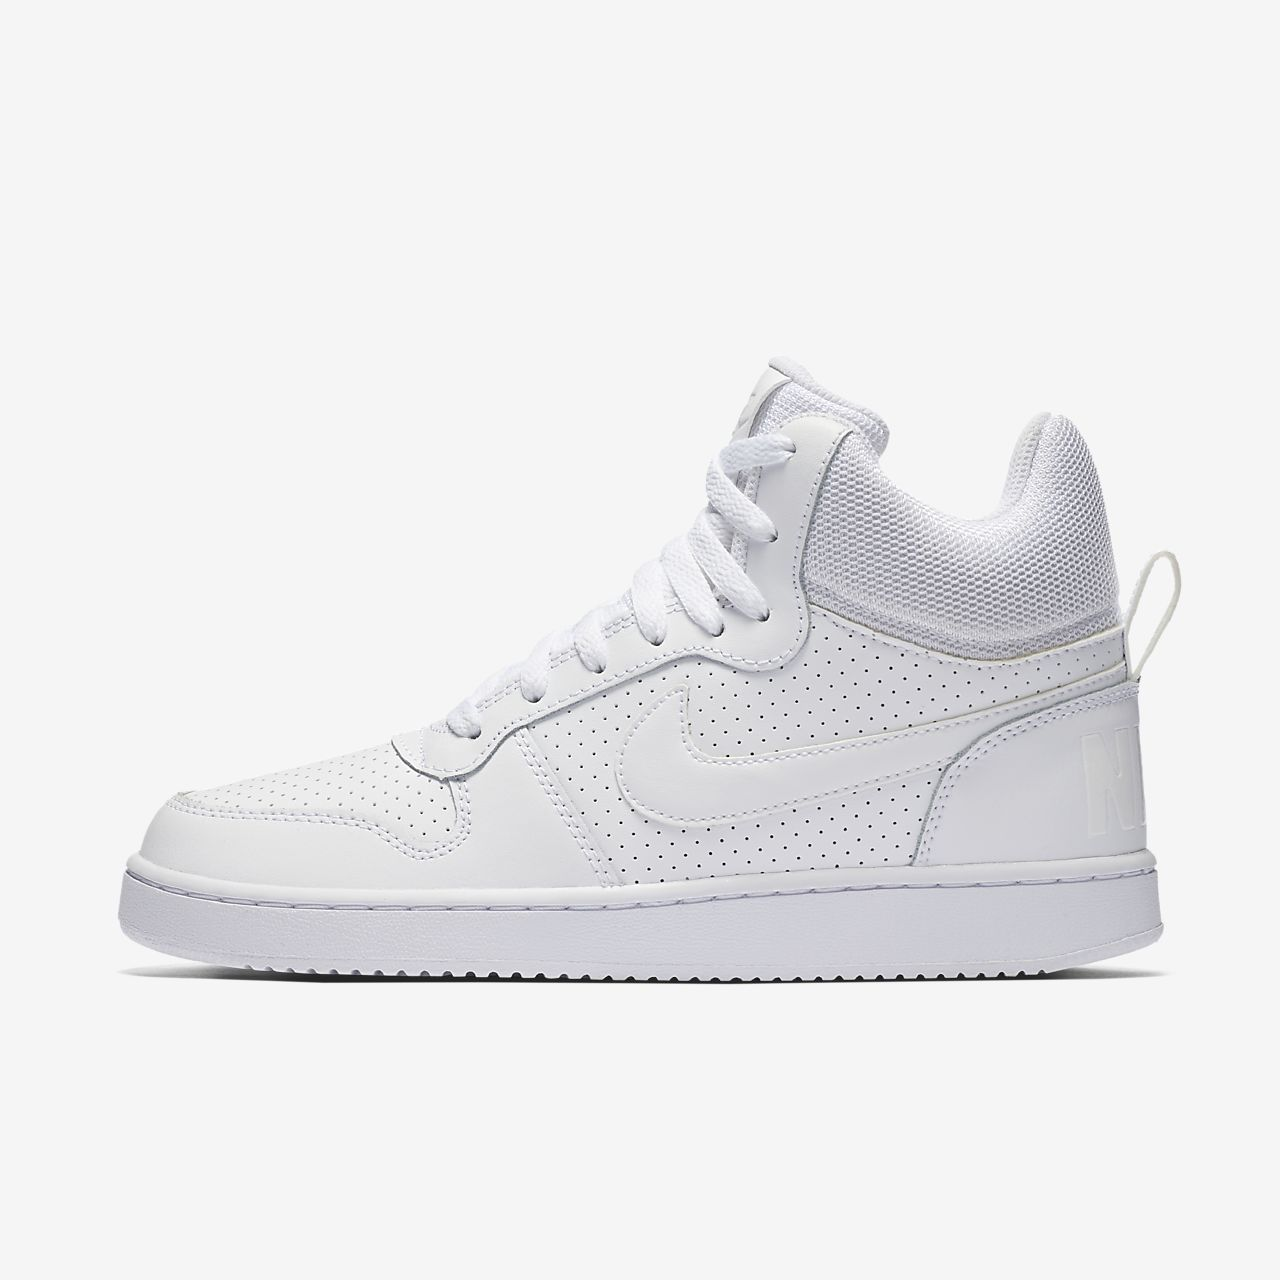 Chaussure Nike Court Court Court Borough Mid pour FR f64aa7